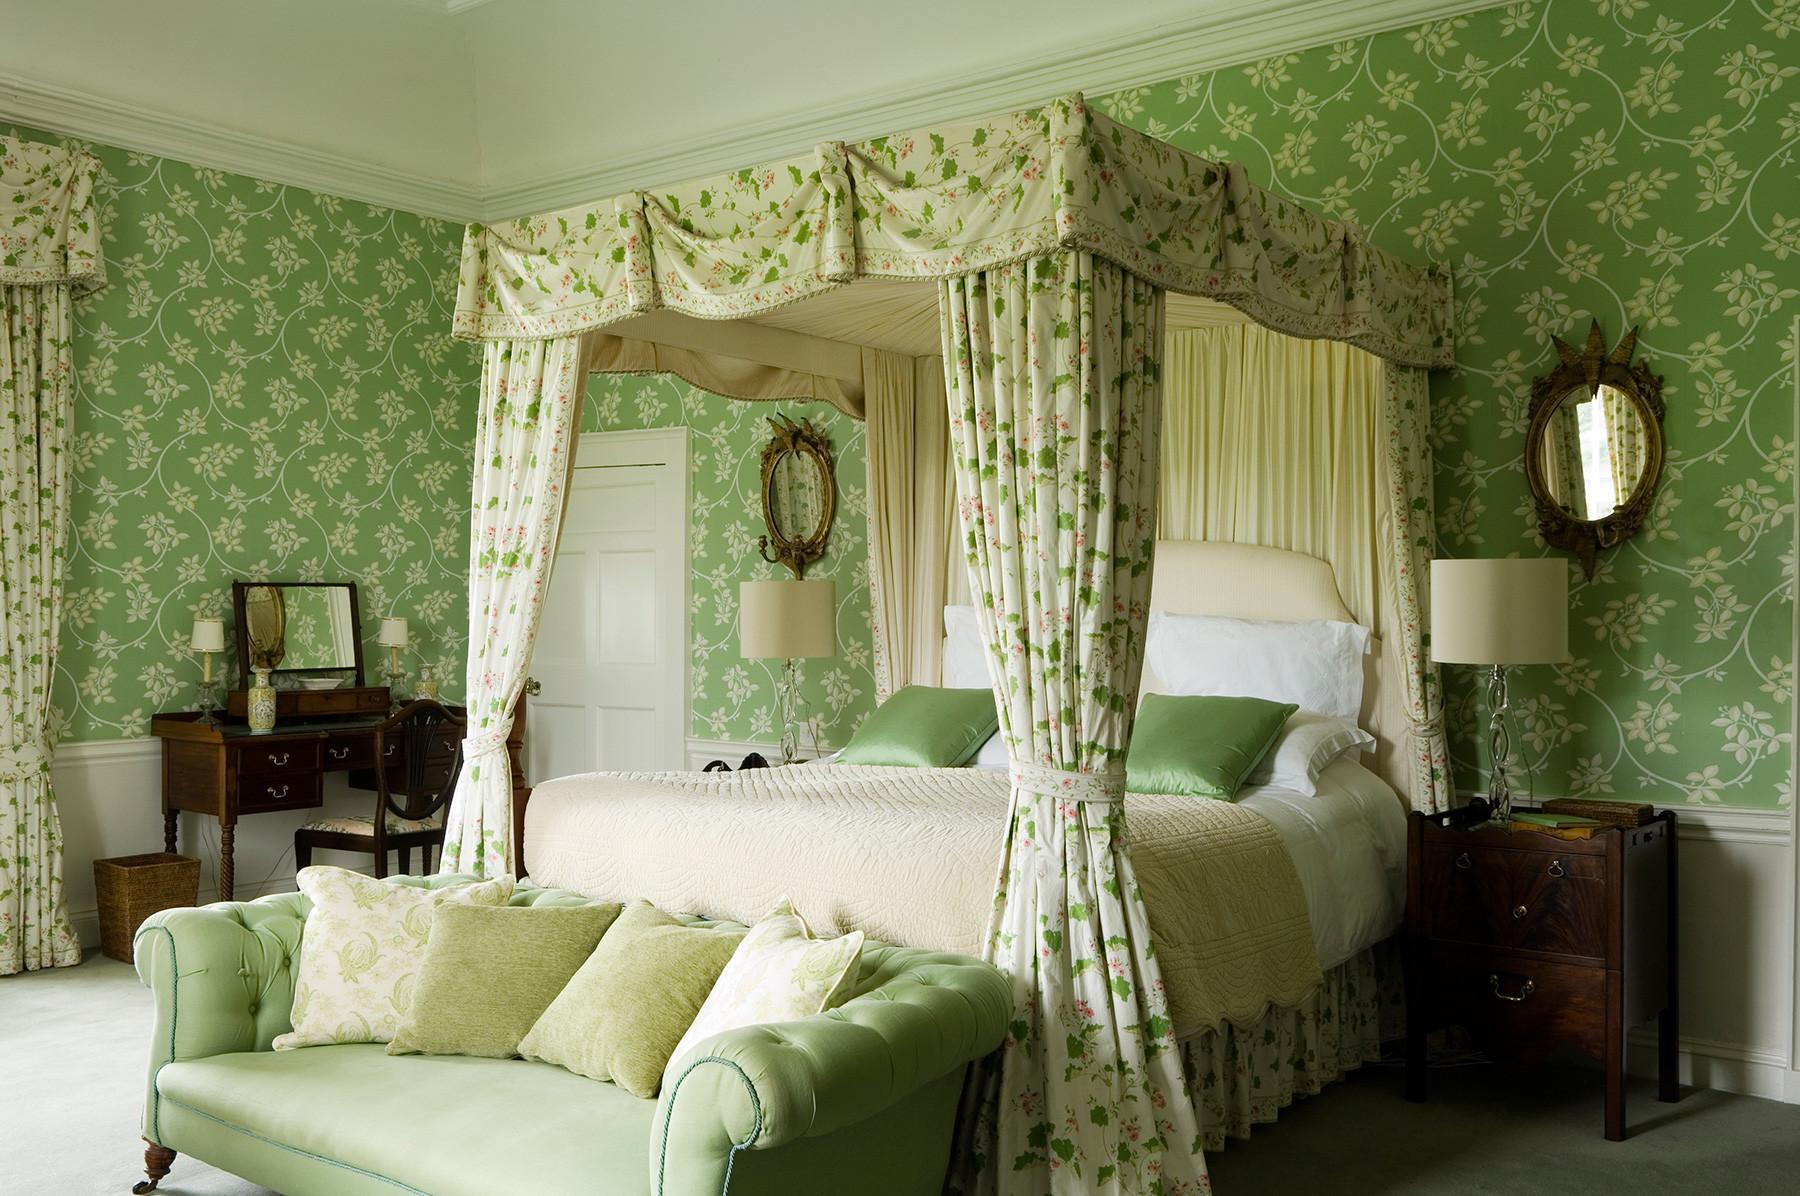 Irish Country Green Bedroom Interiors Color Idolza